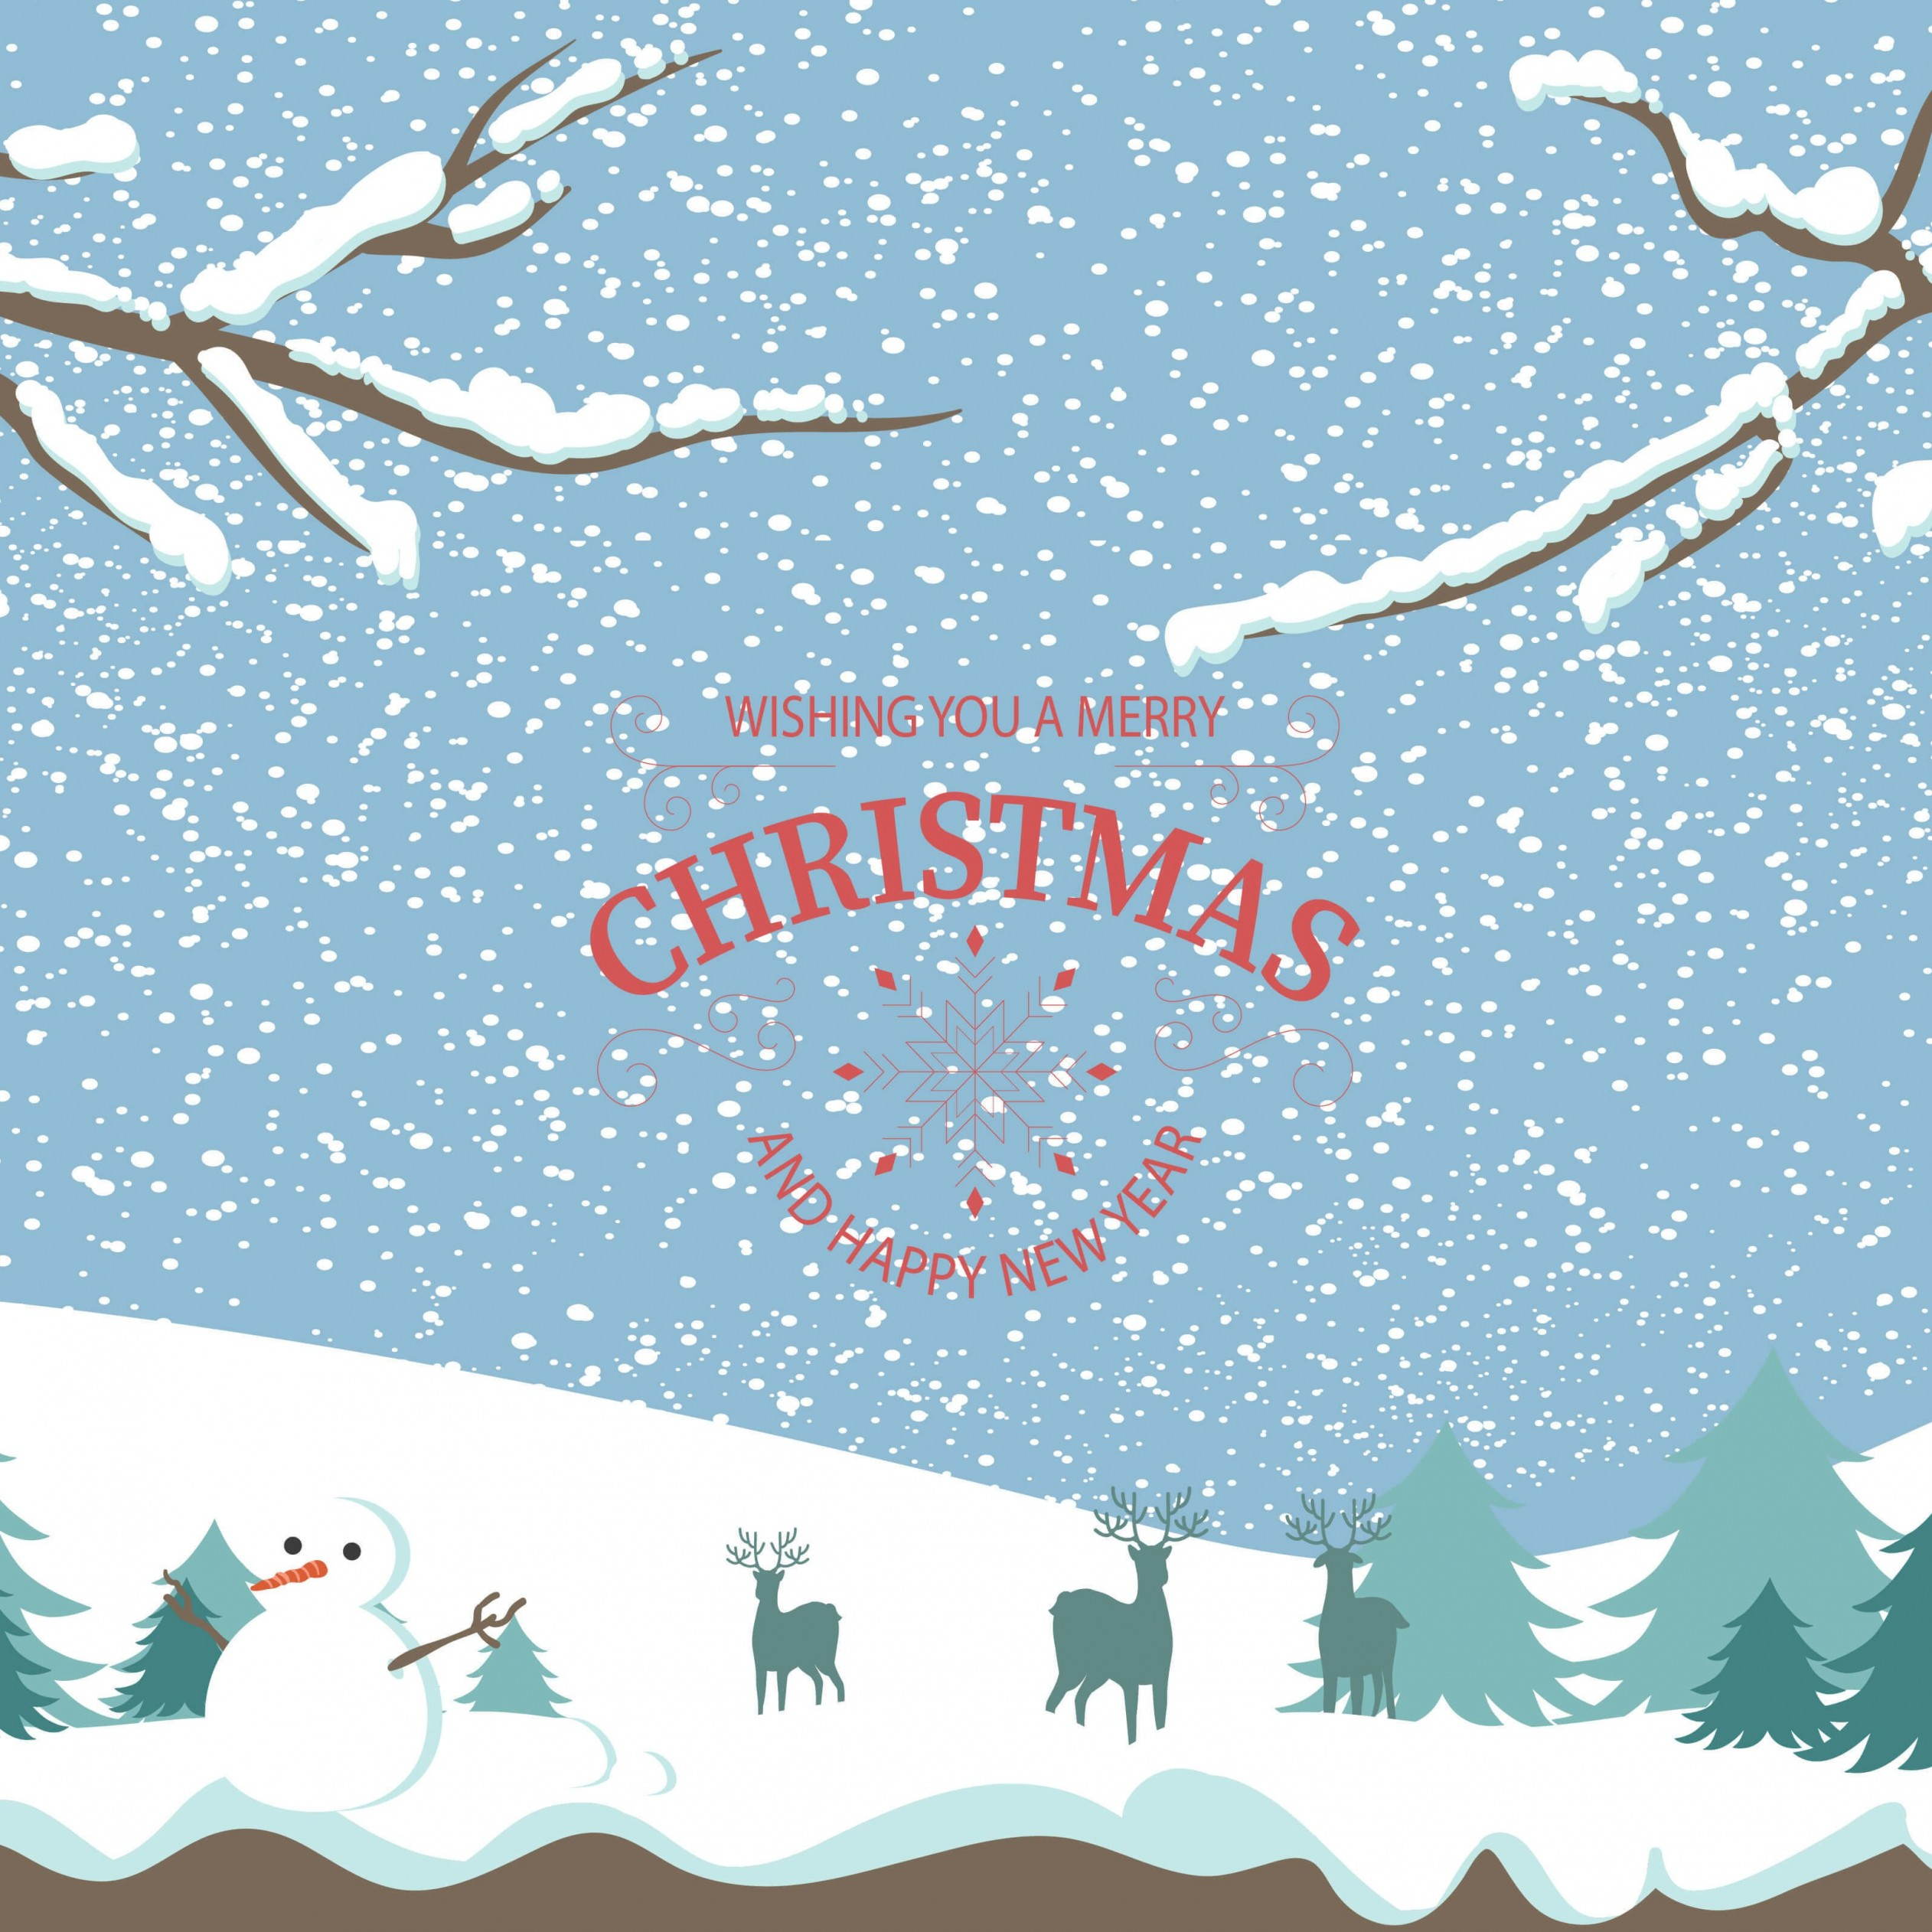 Download Merry Christmas Illustration HD wallpaper for iPad 4 ...